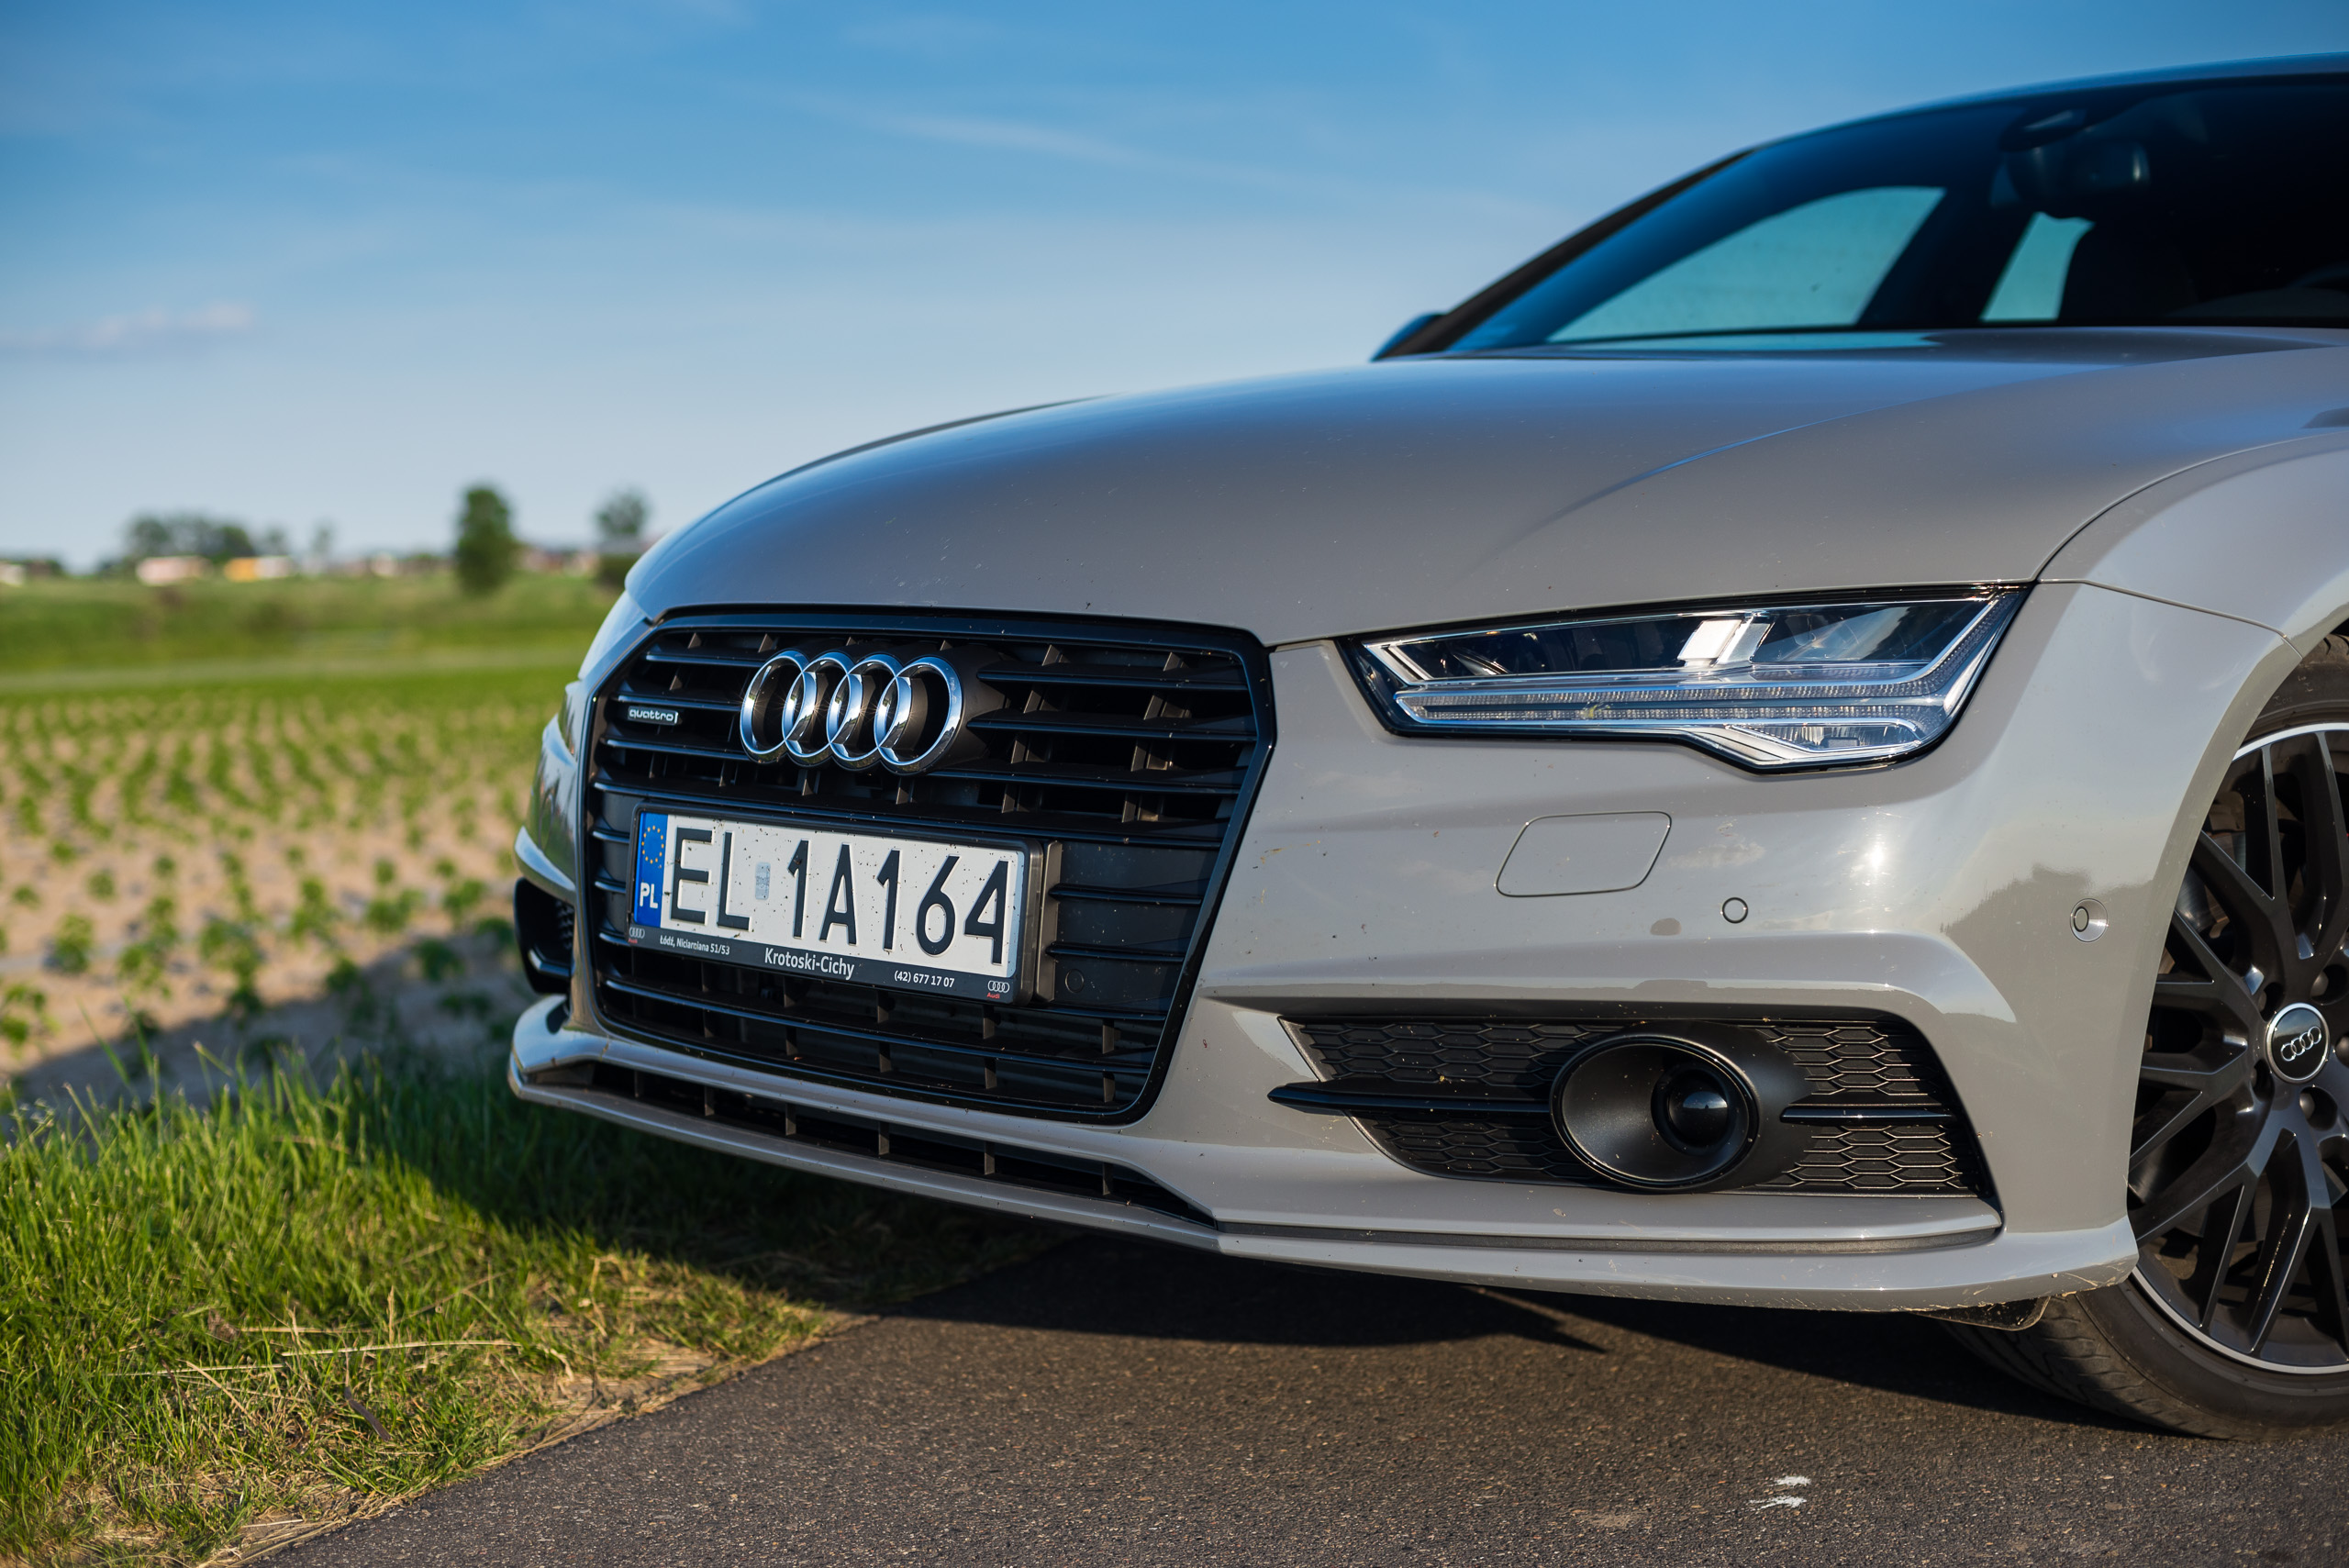 audi a7 sportback 3 0 tdi competition 326 km test project automotive. Black Bedroom Furniture Sets. Home Design Ideas